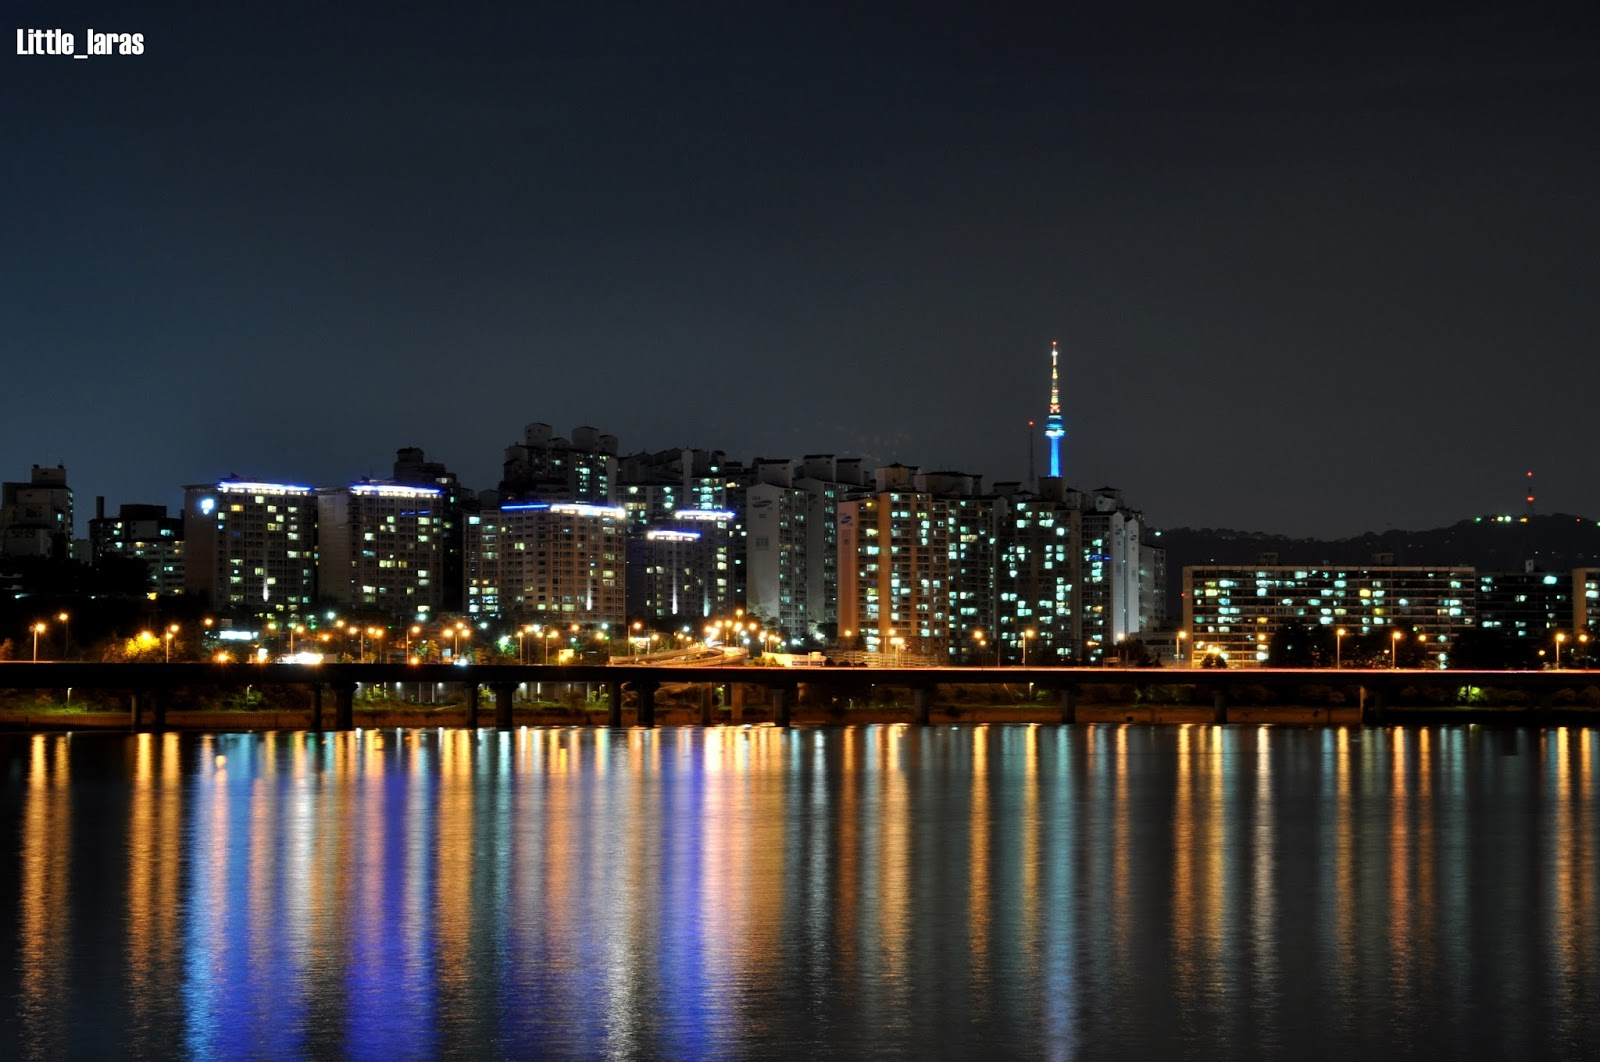 Han River At Night From Yeouido Park Little Laras